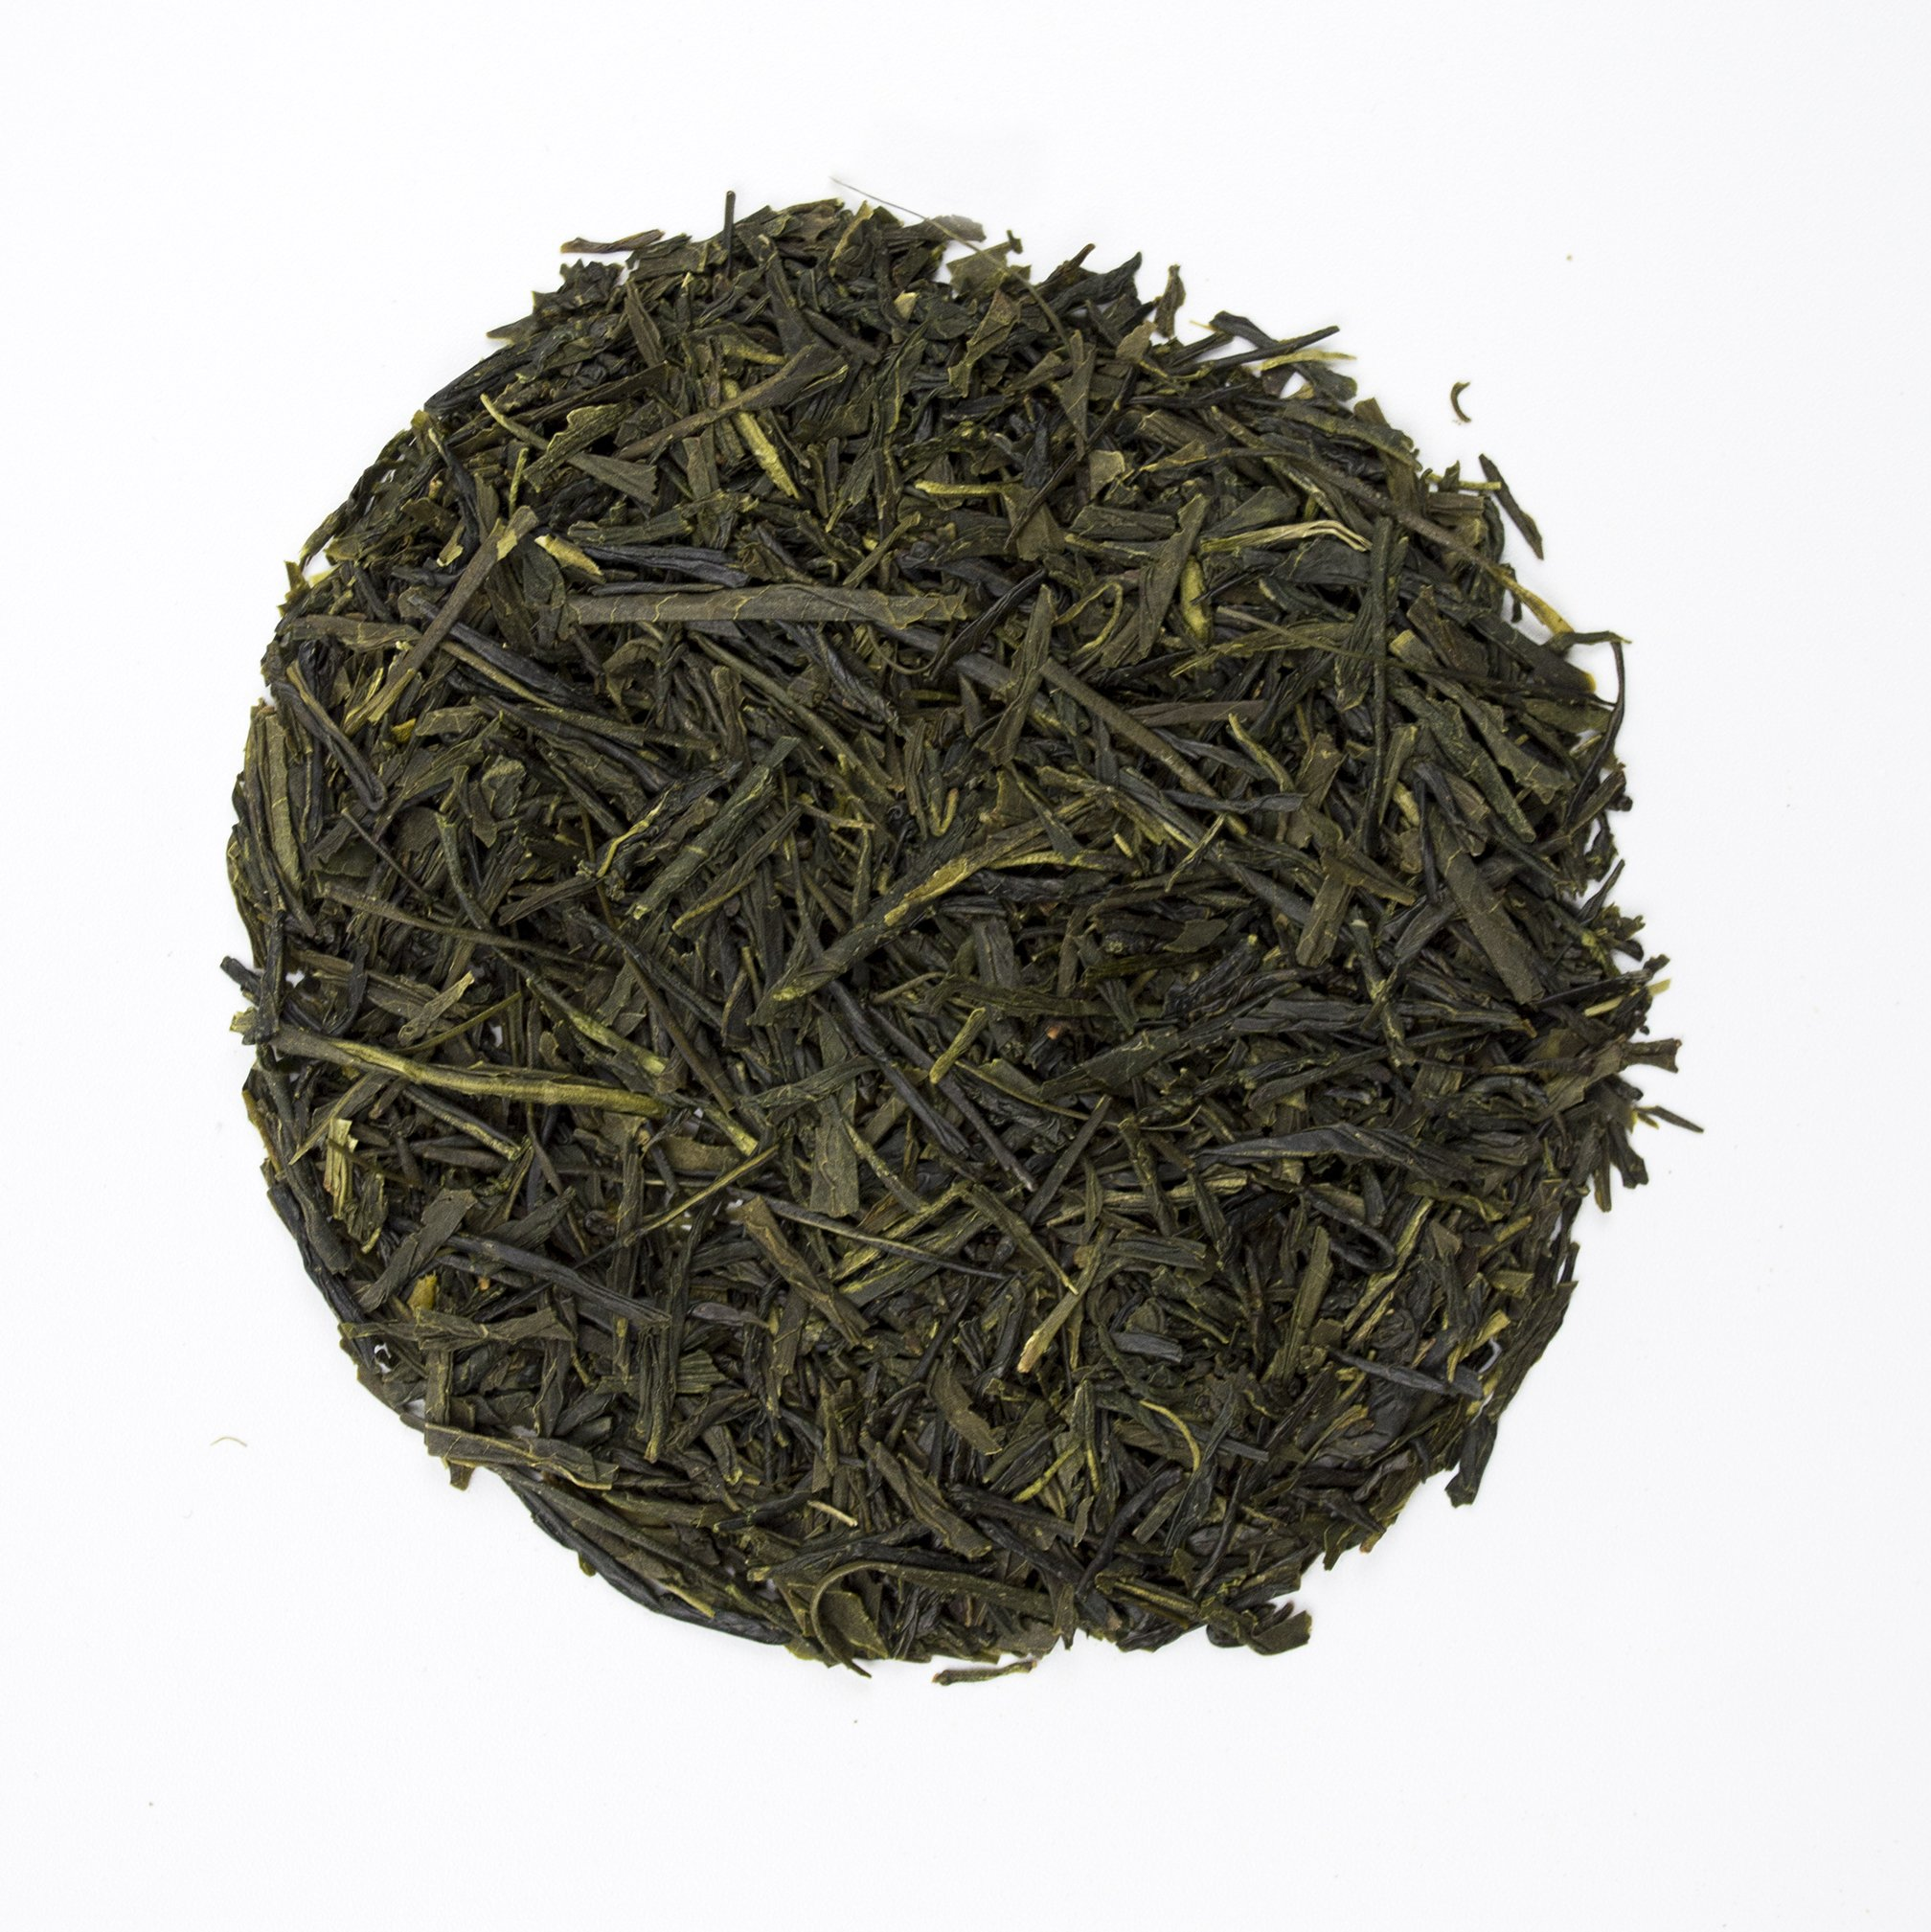 Suju's Tea - Premium Japanese Gyokuro Imperial Green Tea (16 Oz / 1 Lb) by Suju's Coffee & Tea